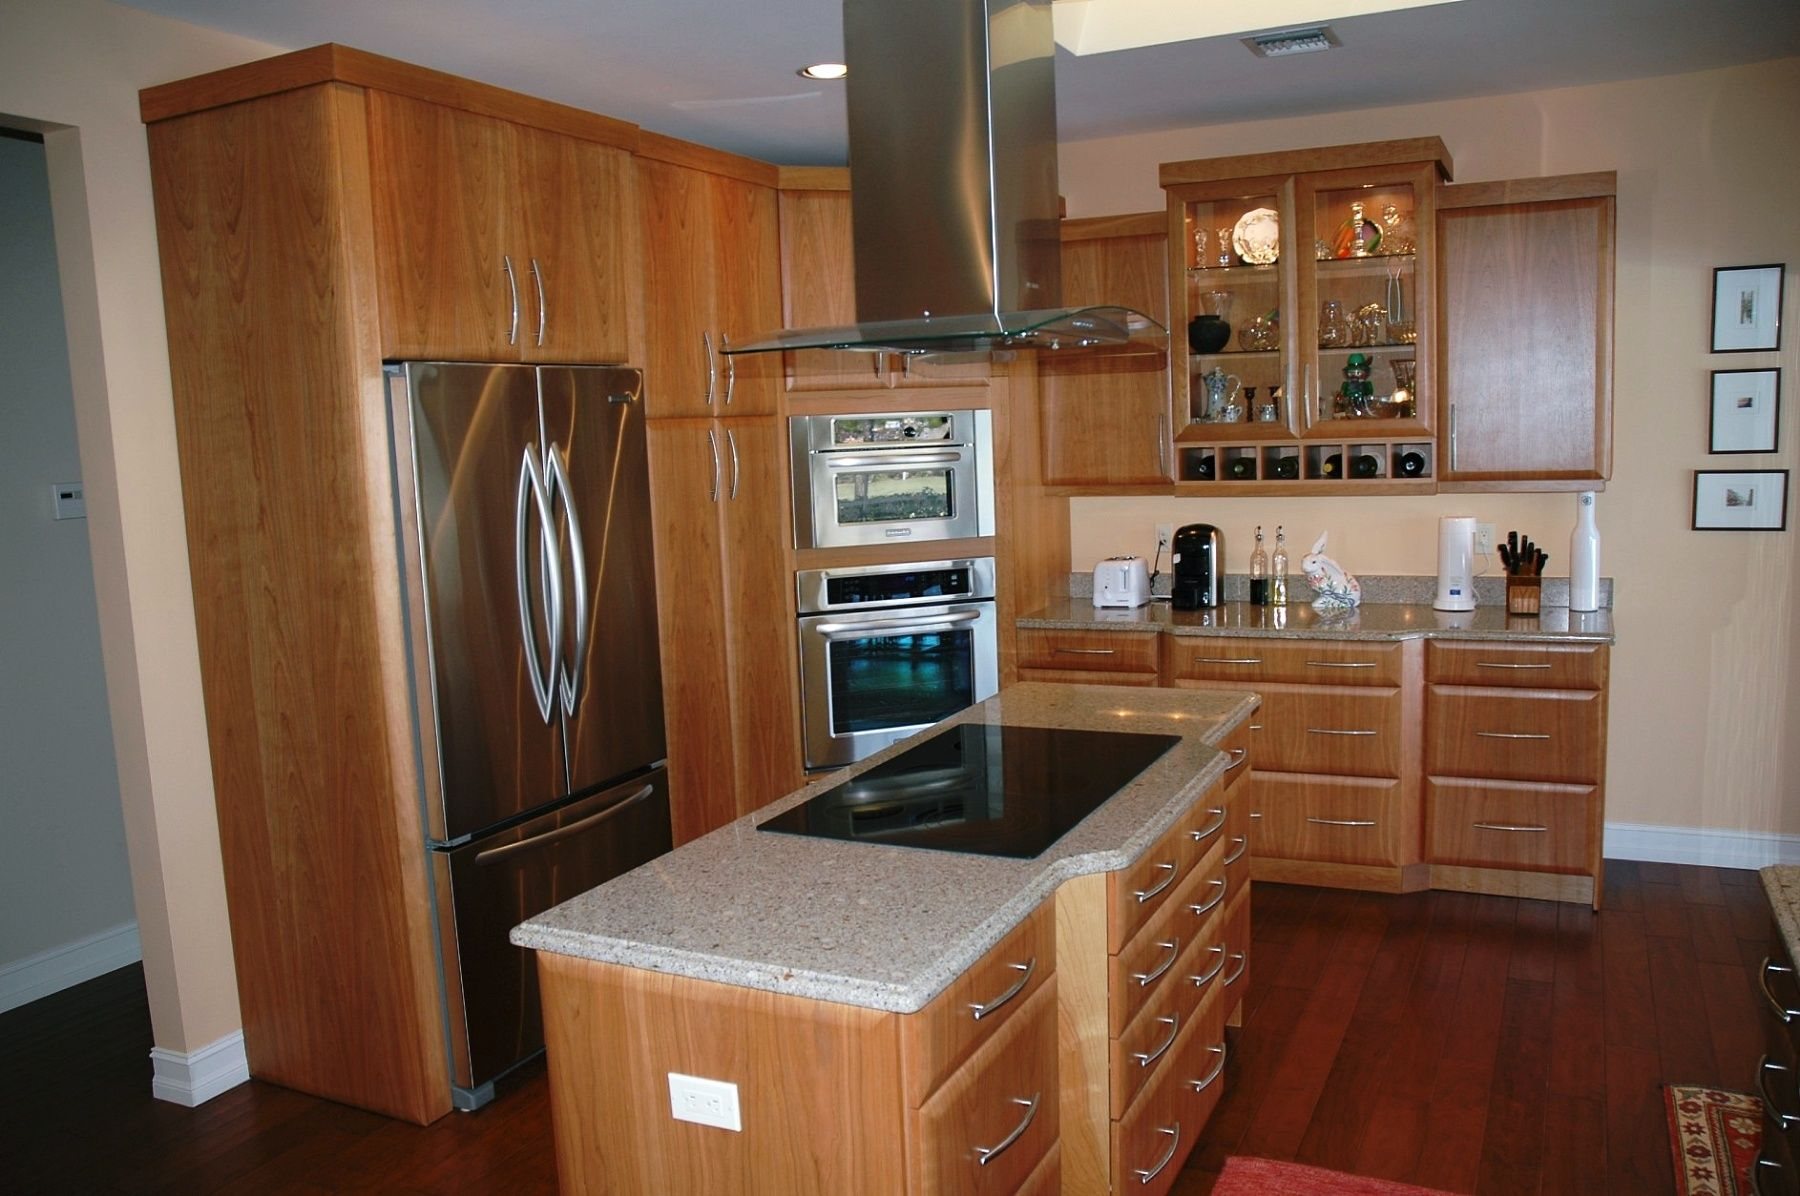 New kitchen cabinets designed and installed by The Cabinet ...